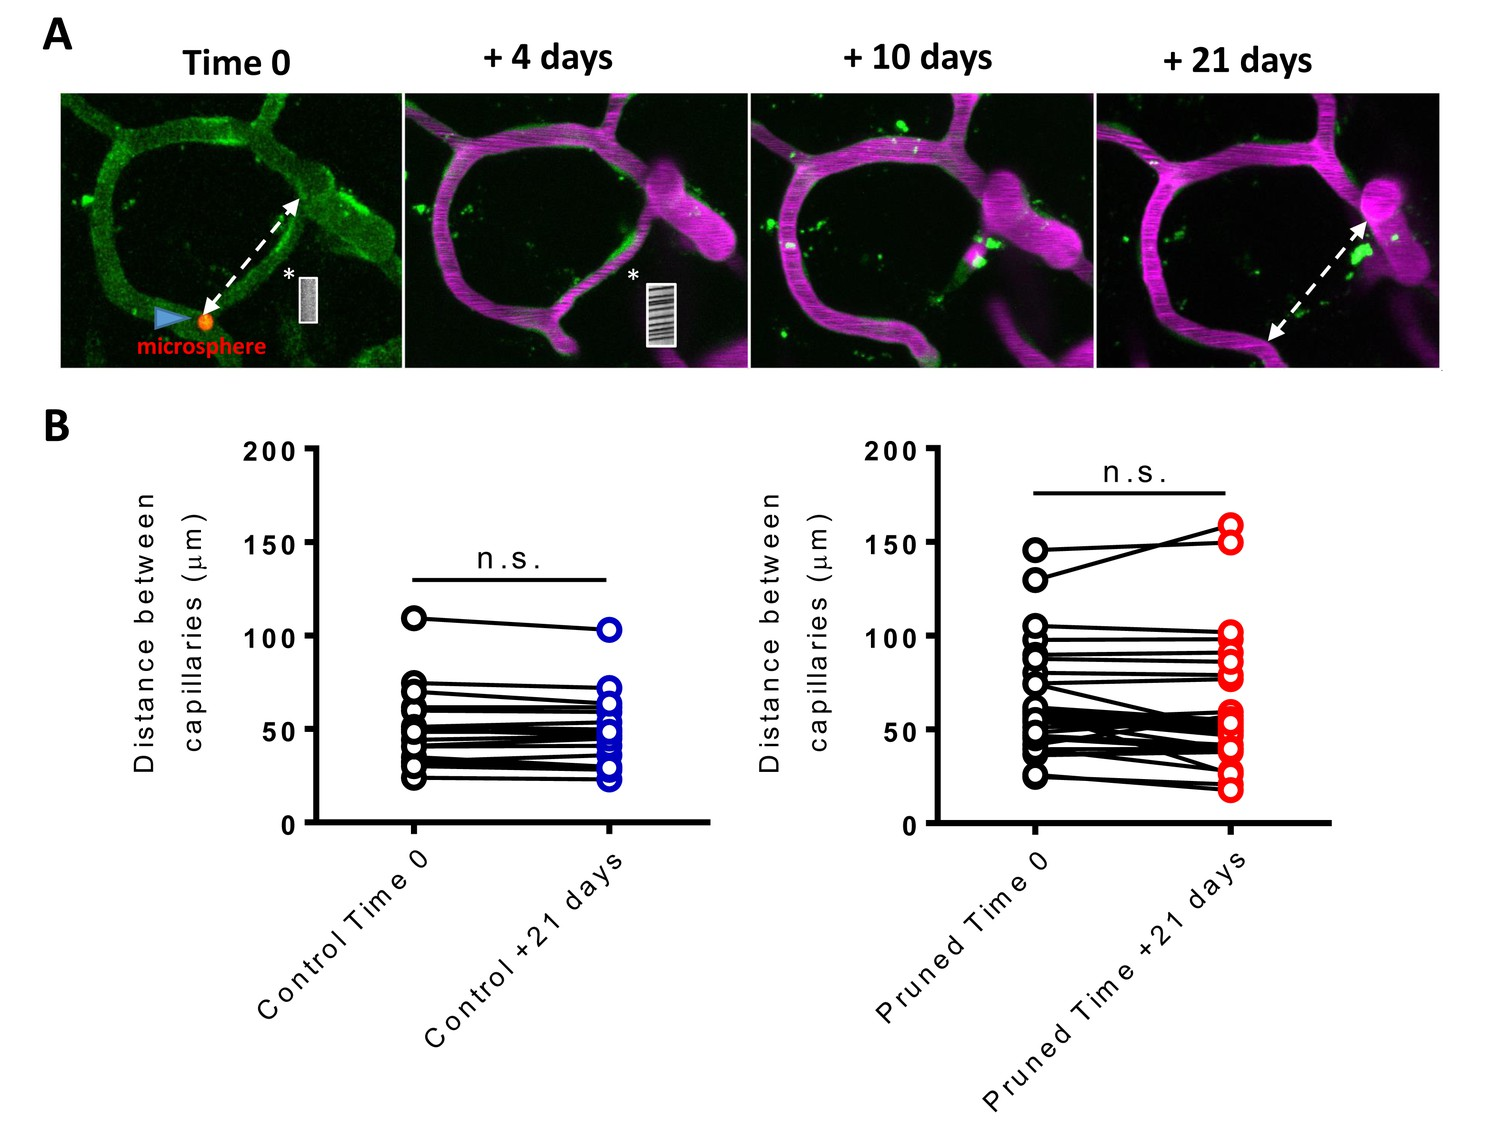 Vegf Signaling Regulates The Fate Of Obstructed Capillaries In Mouse Shear Moment Diagram Distributed Load Capillary Pruning Does Not Alter Adjoining Position